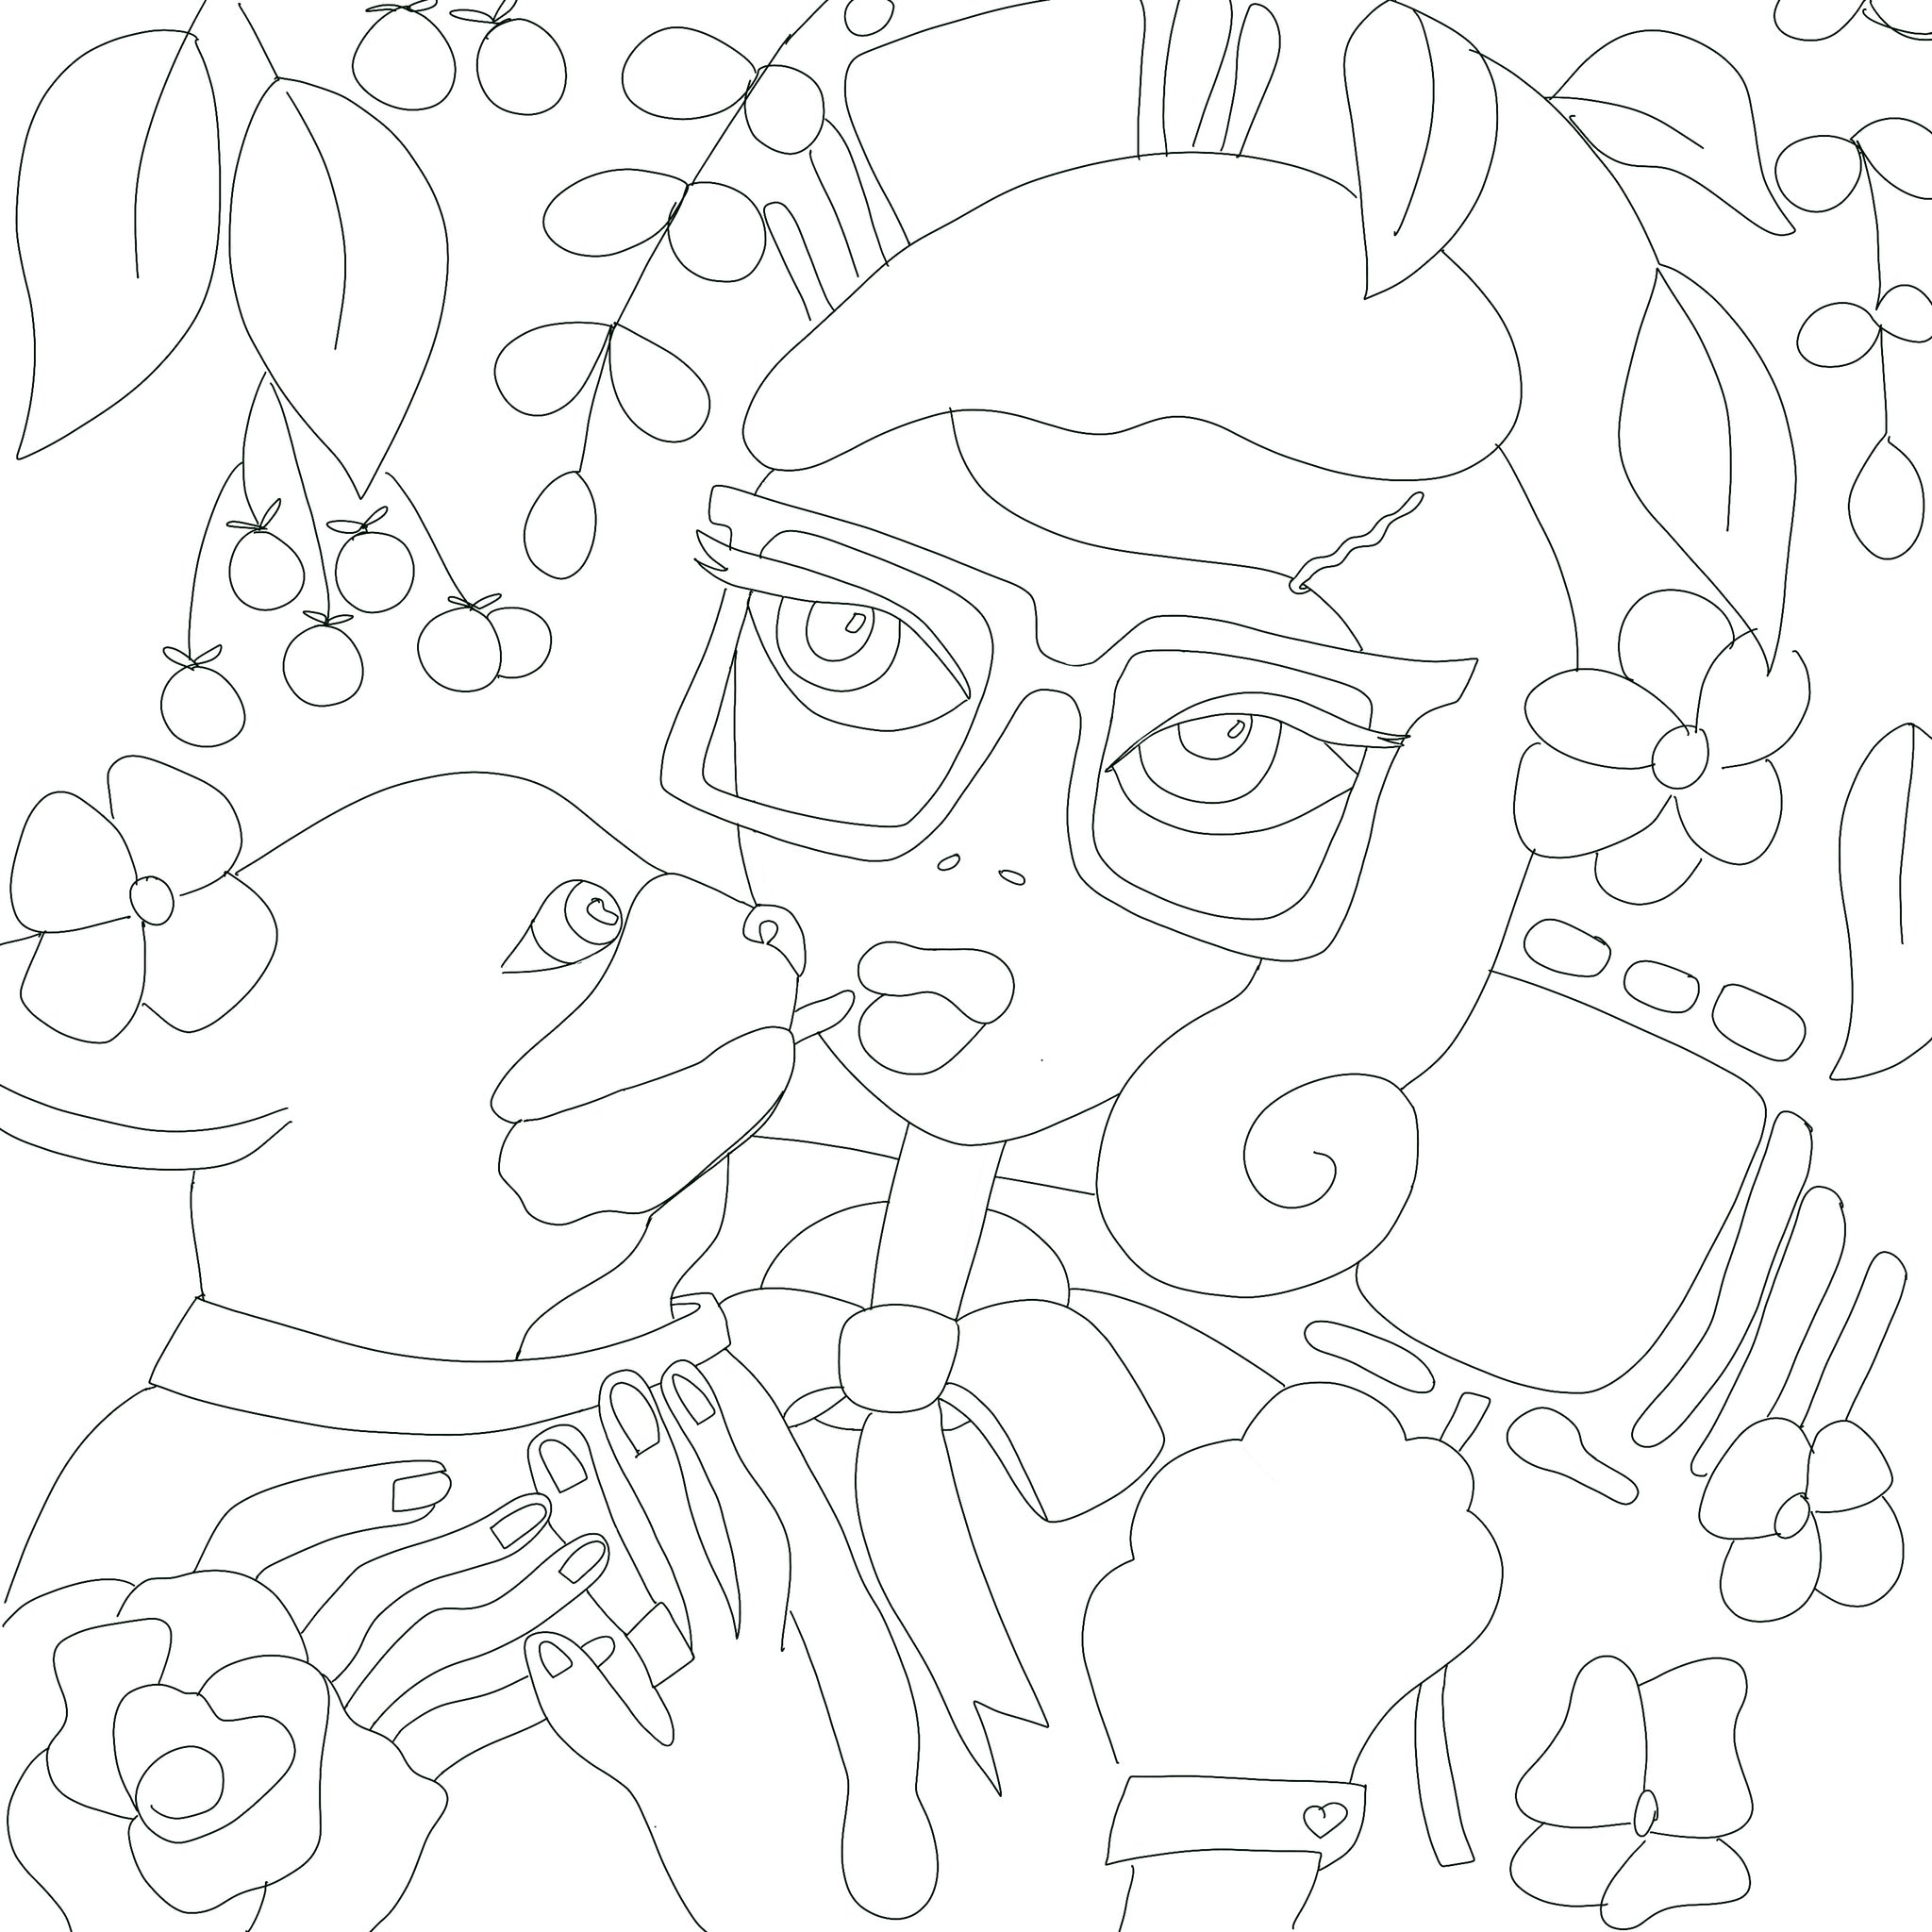 Dog Kissing Girl Digital Coloring Page for ProCreate